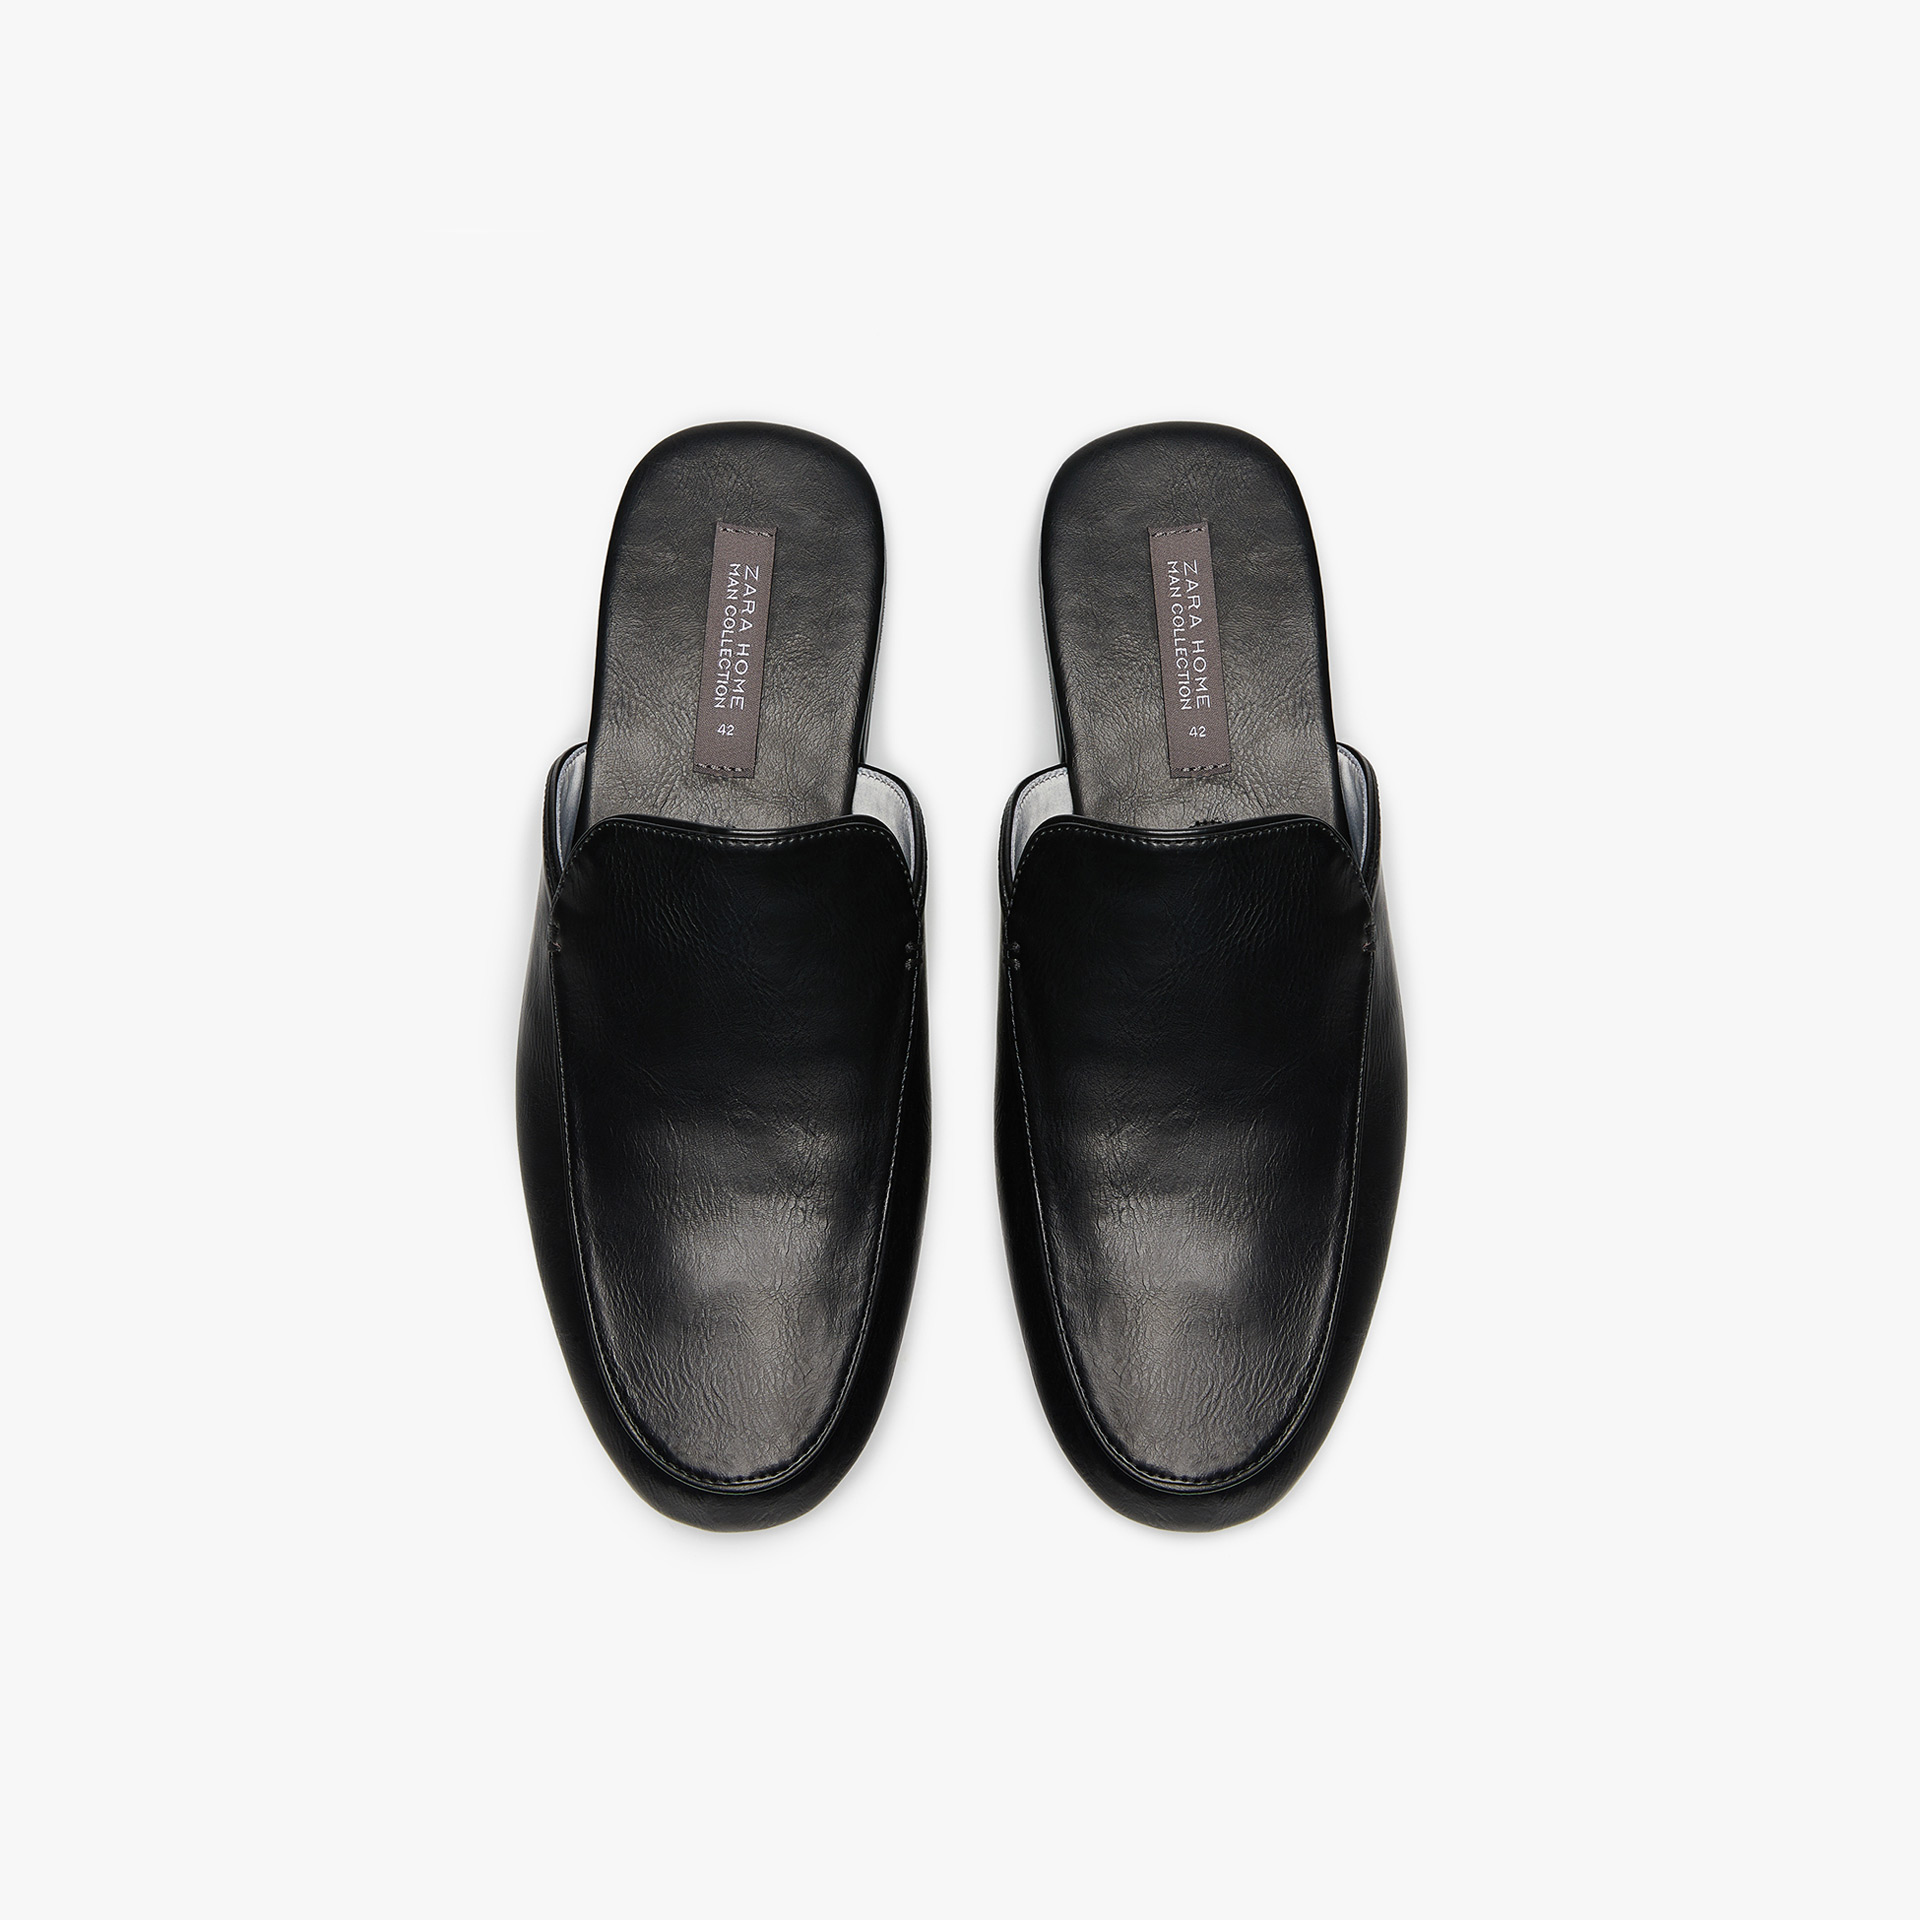 MOCASSINMODEL SLIPPER